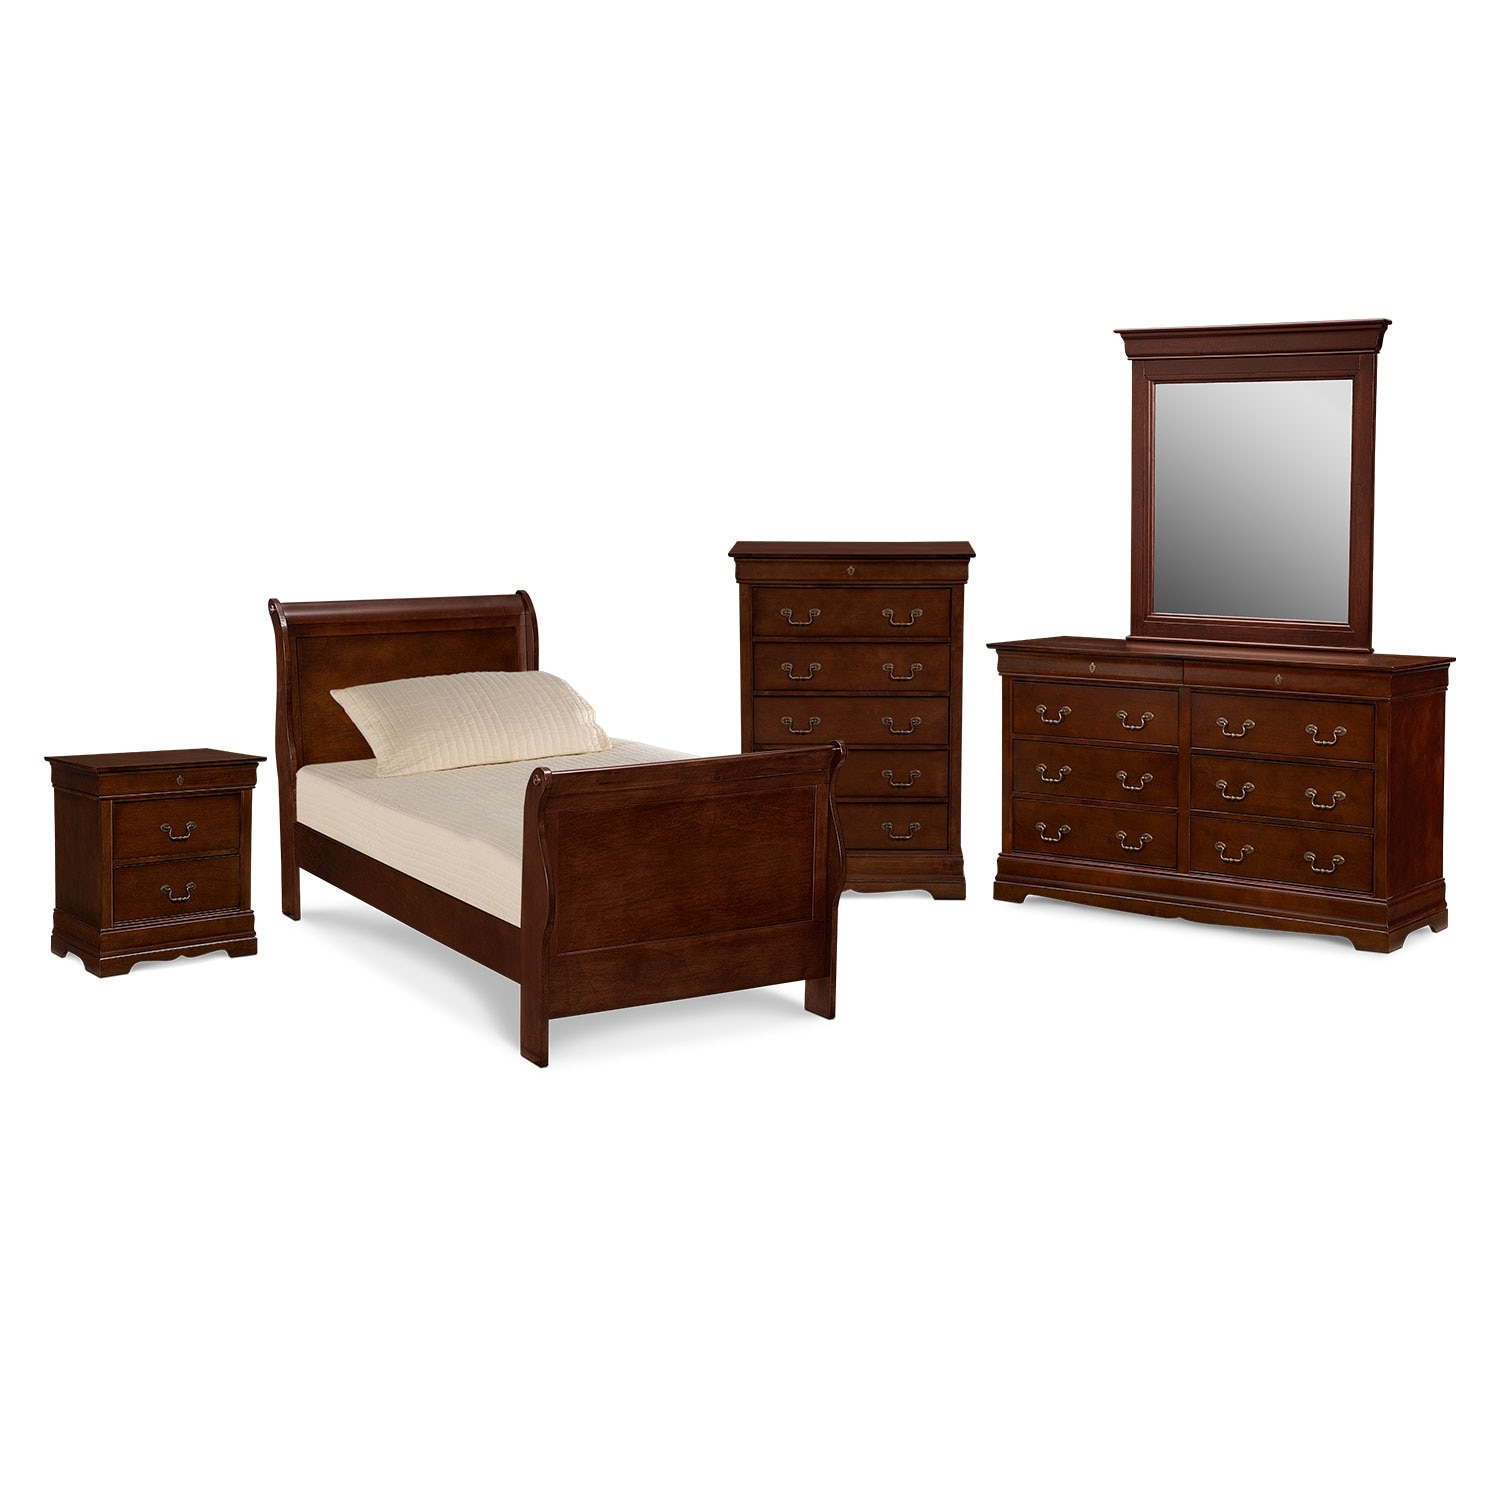 Neo classic youth 7 piece twin bedroom set cherry for Cherry furniture